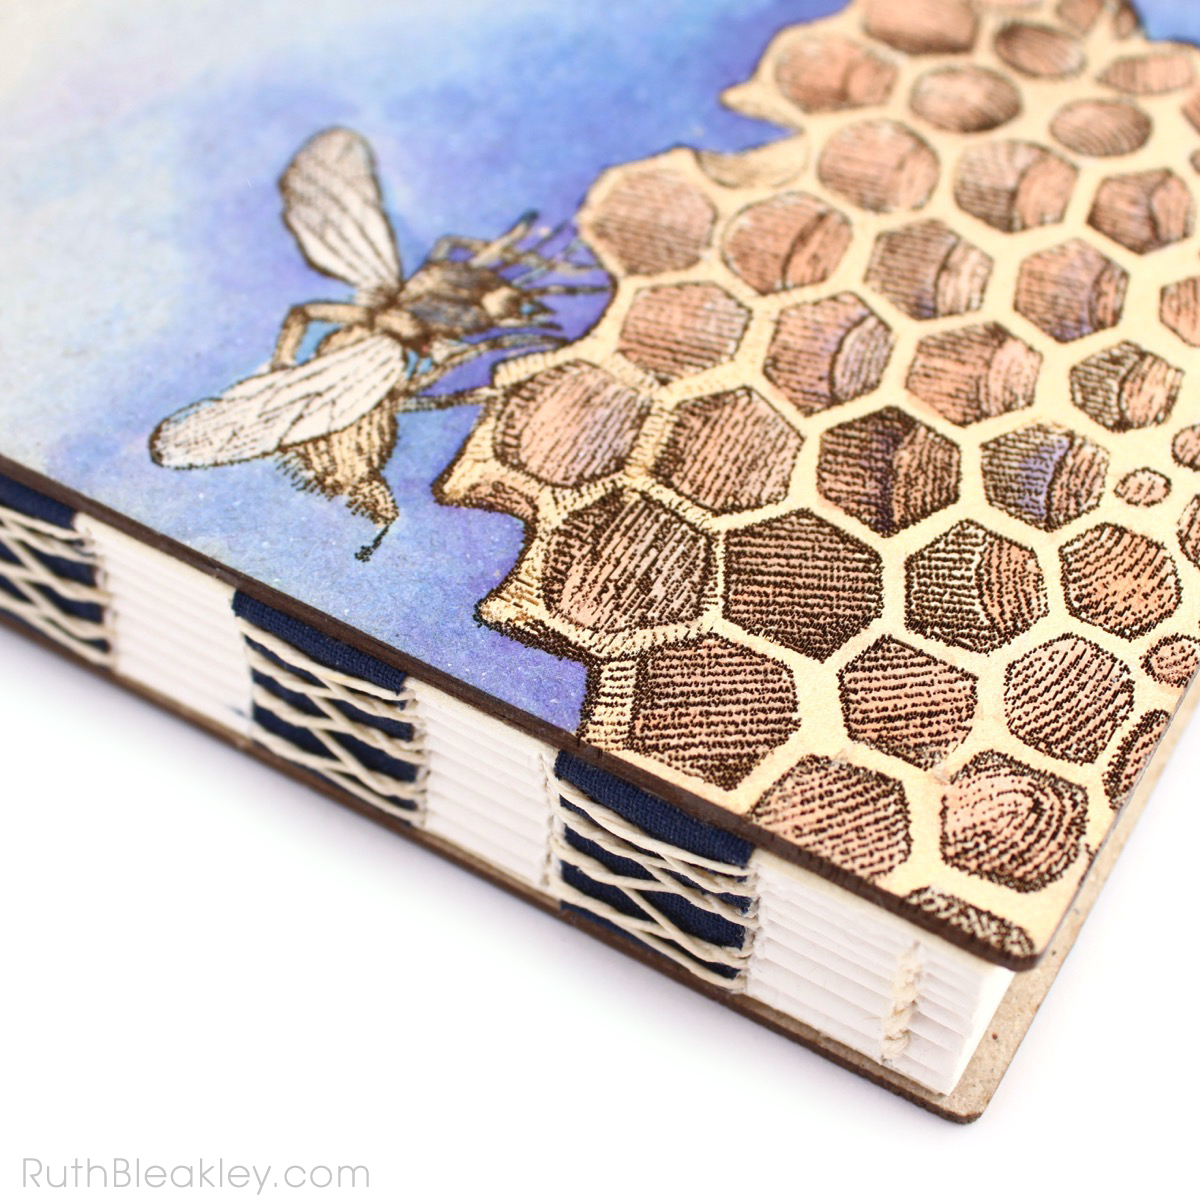 Hand Painted Honeybee Journal with engraved covers handmade by book artist Ruth Bleakley - 3